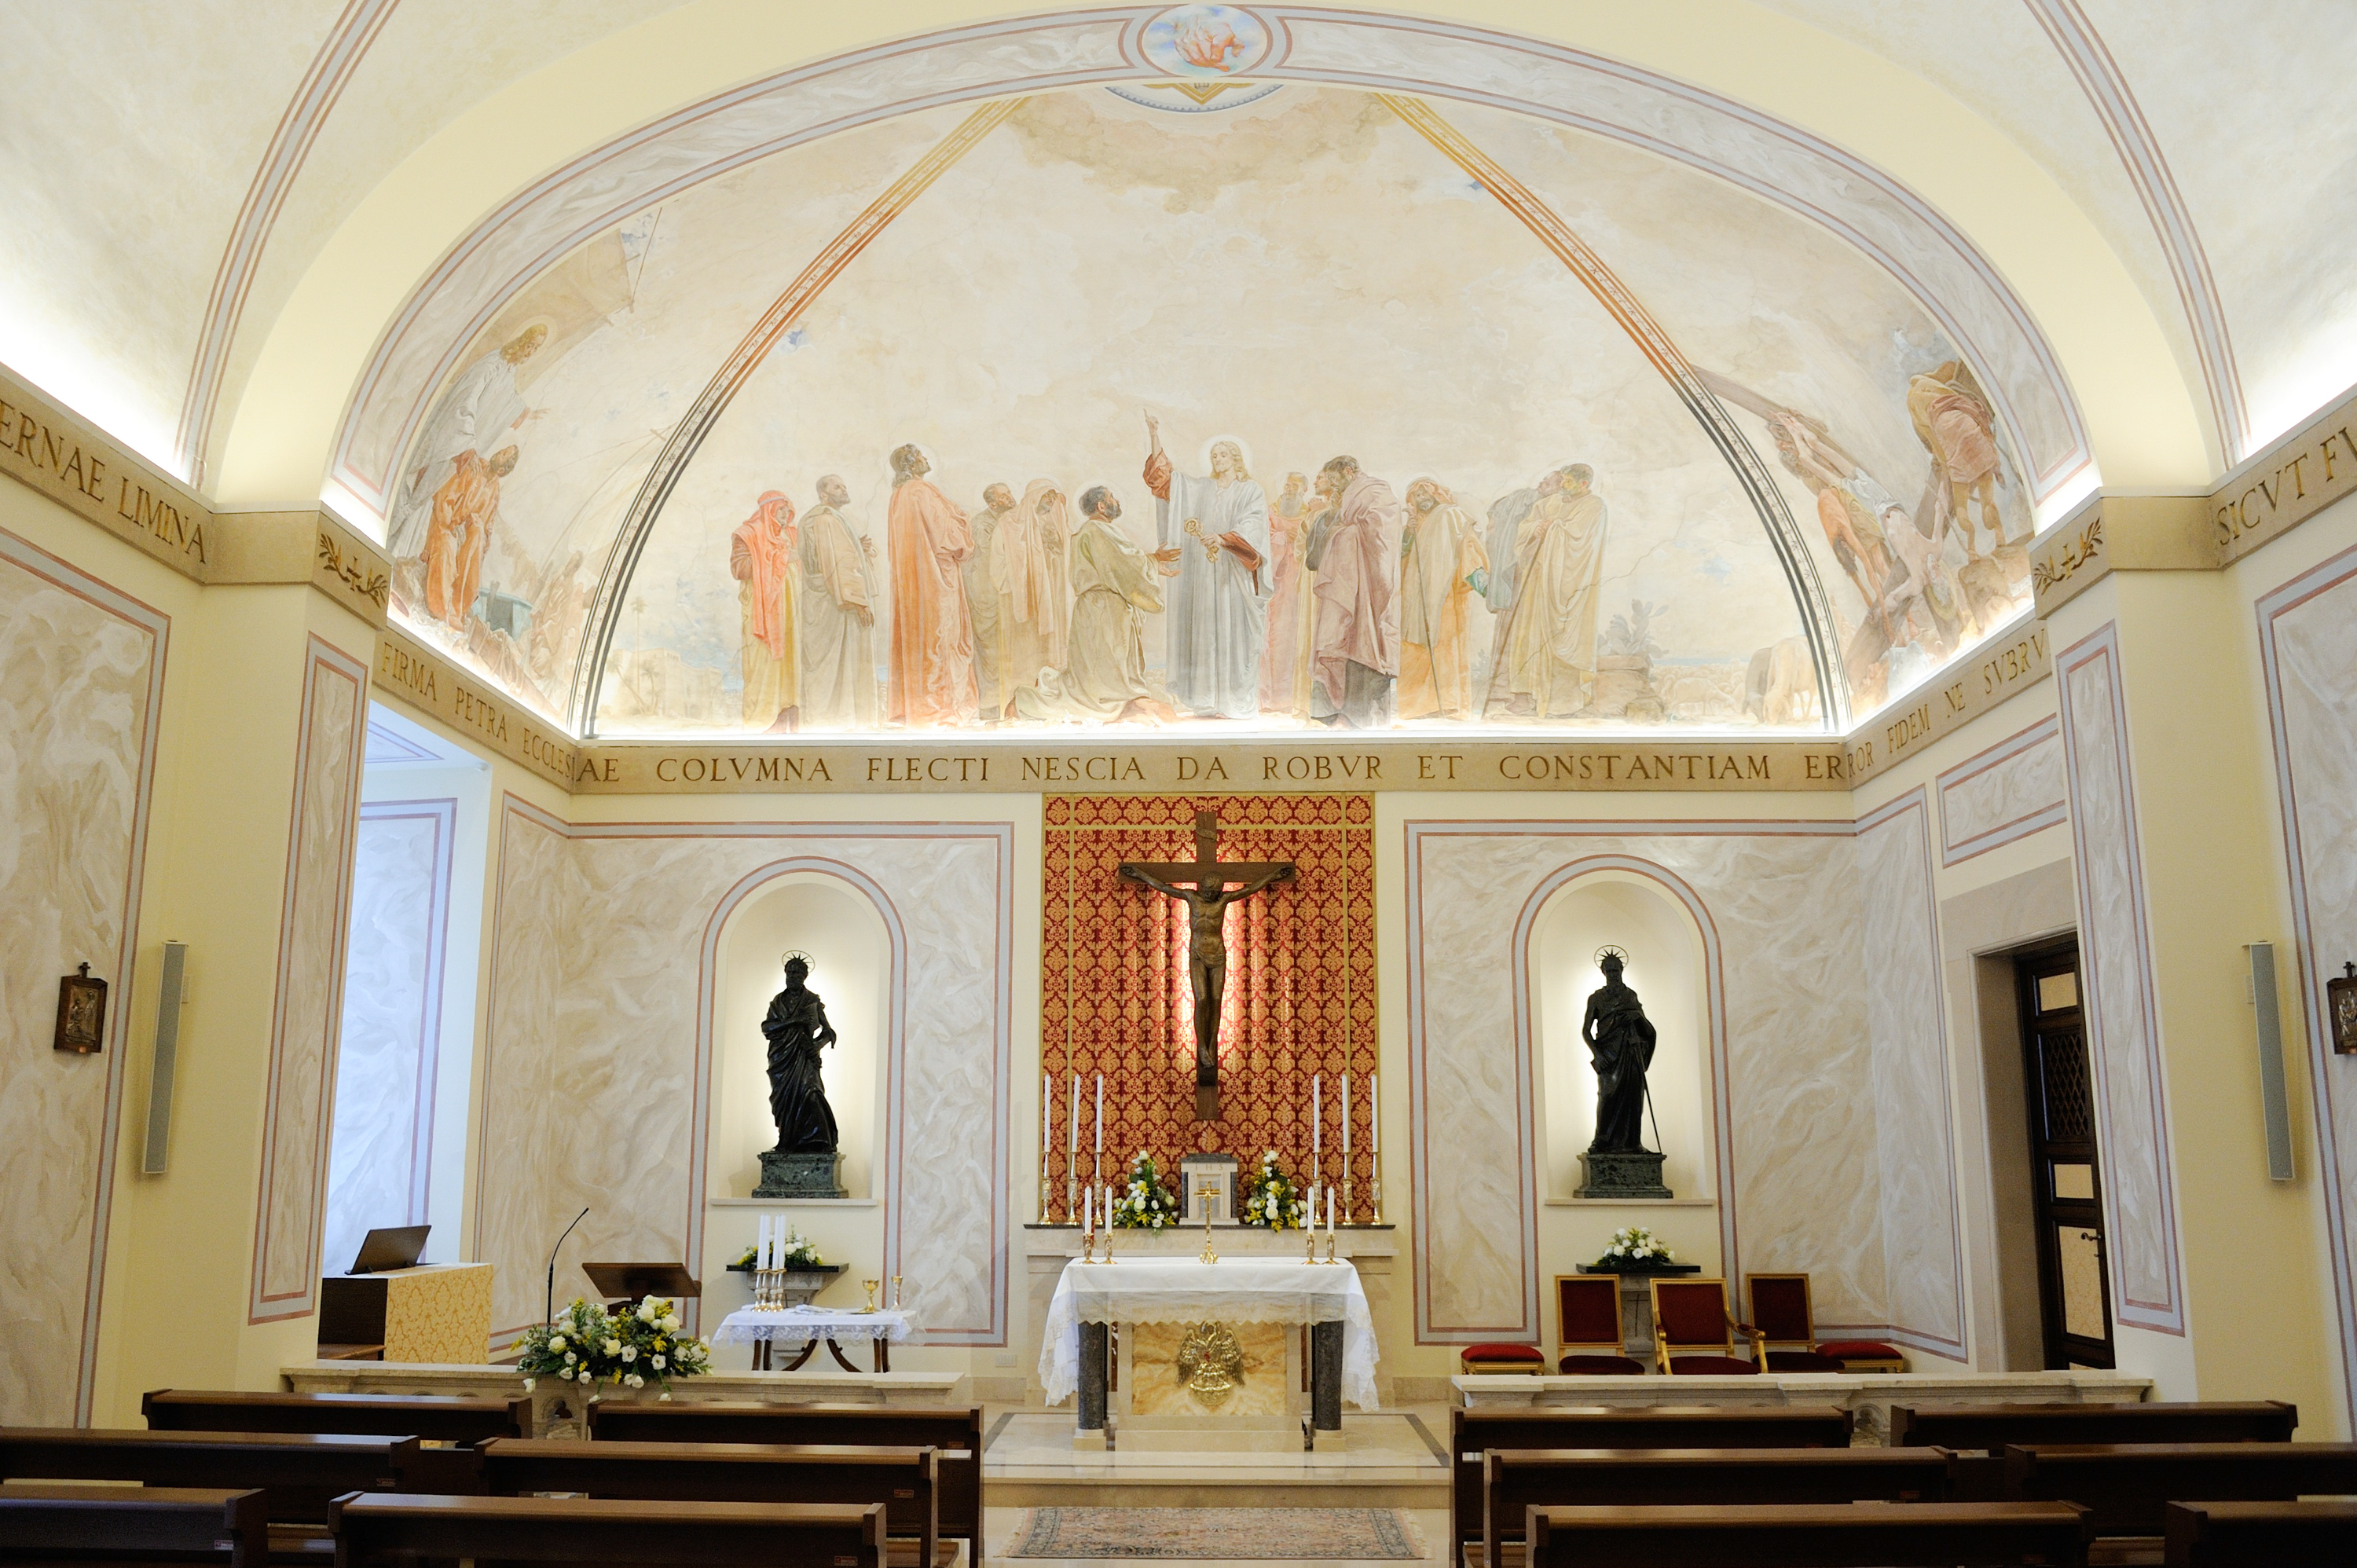 Sts. Peter and Paul Association 5